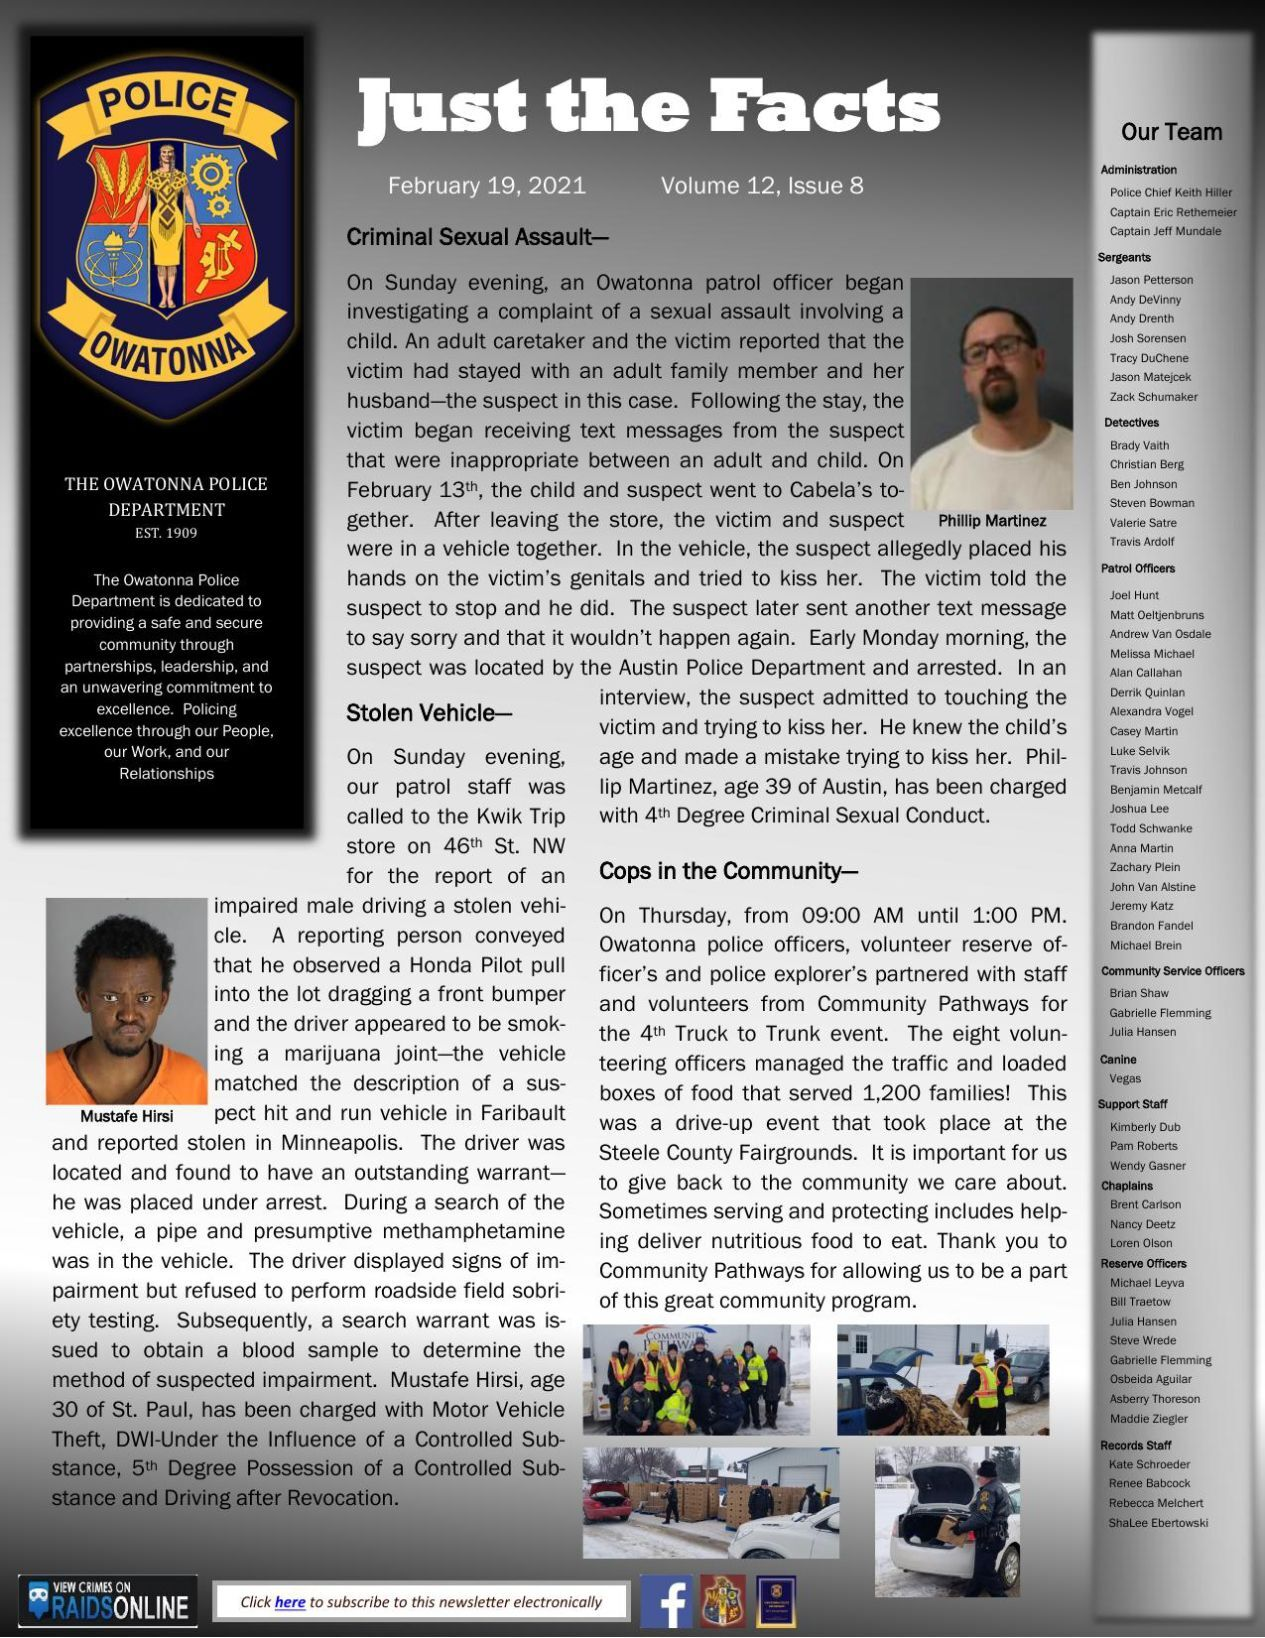 Just the Facts - Owatonna Police Dept. weekly newsletter, Feb. 19